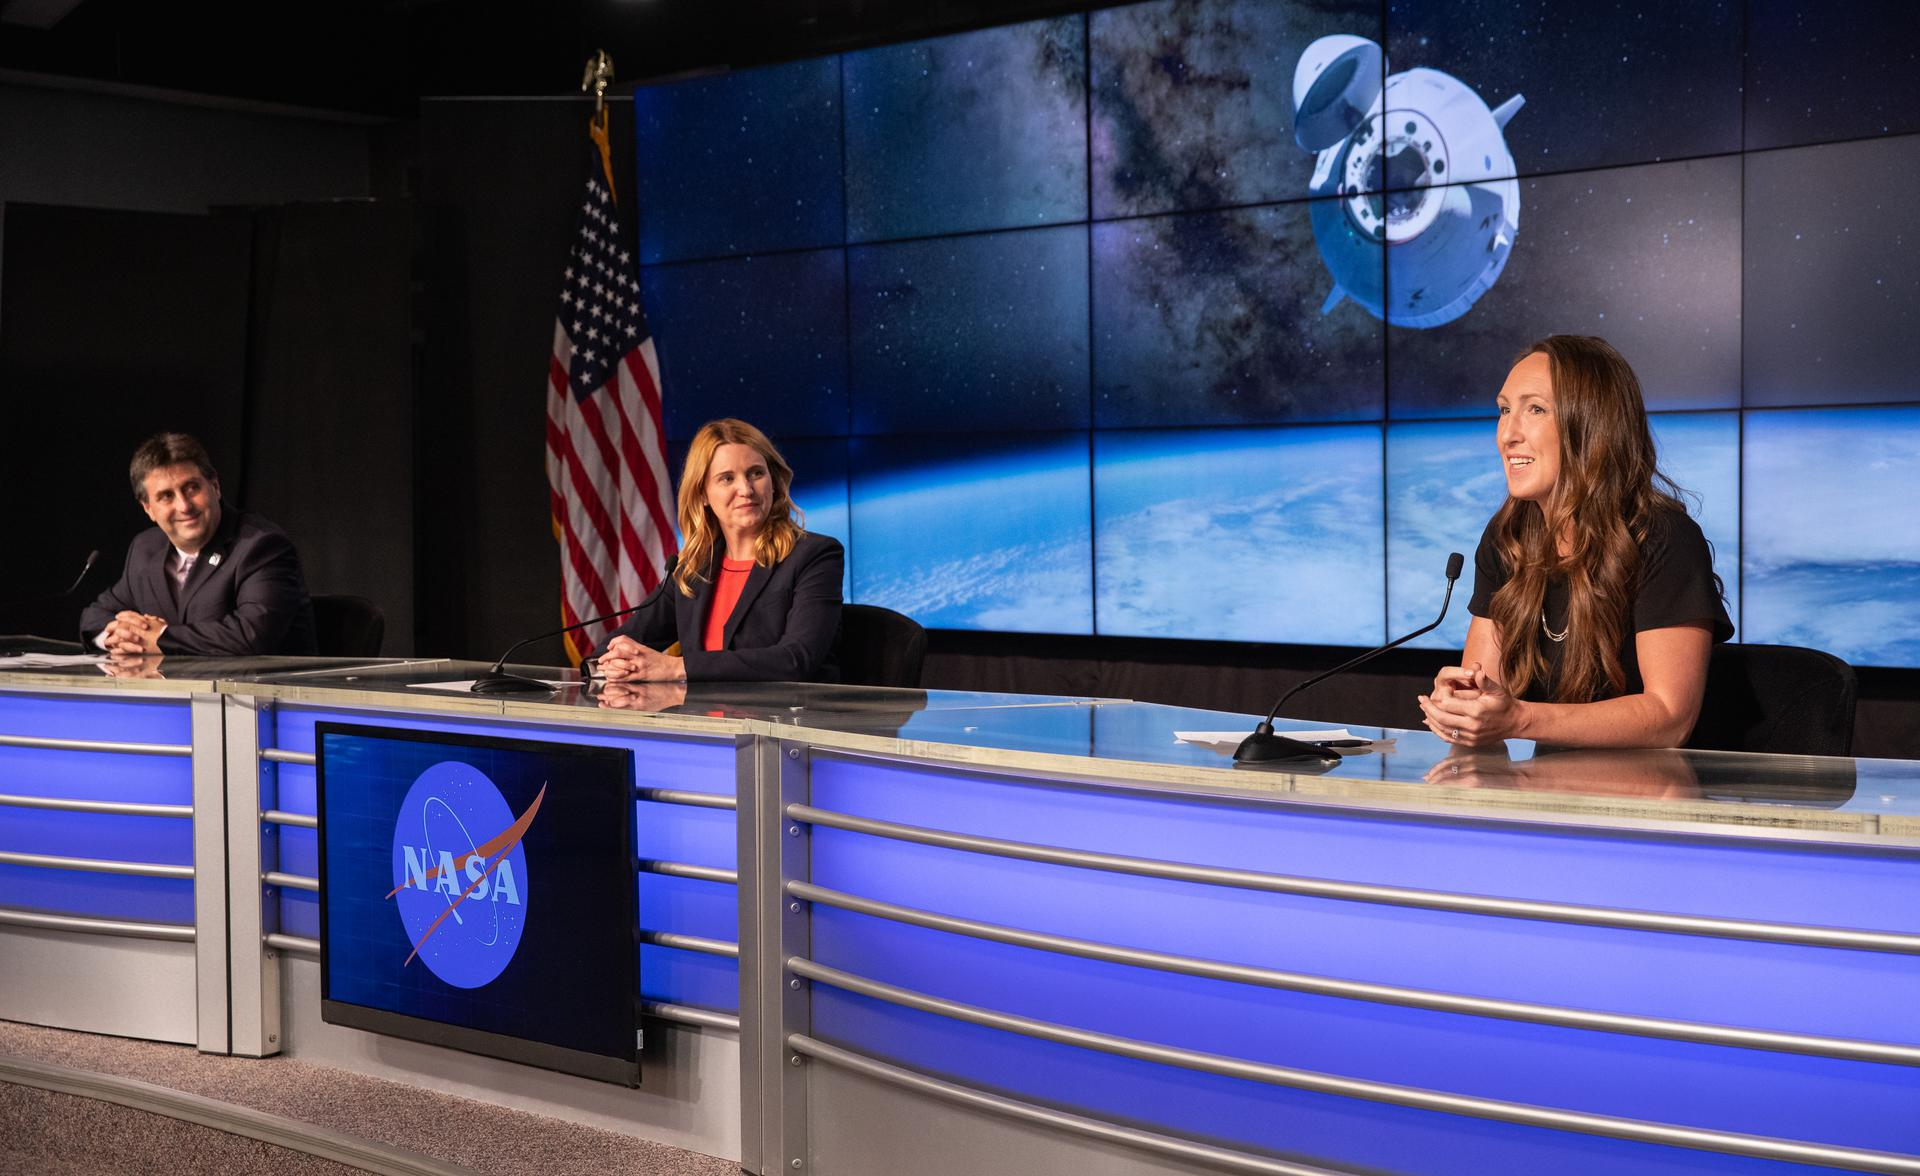 A prelaunch news conference is held at NASA's Kennedy Space Center in Florida on June 2, 2021, in preparation for SpaceX's 22nd cargo resupply mission.